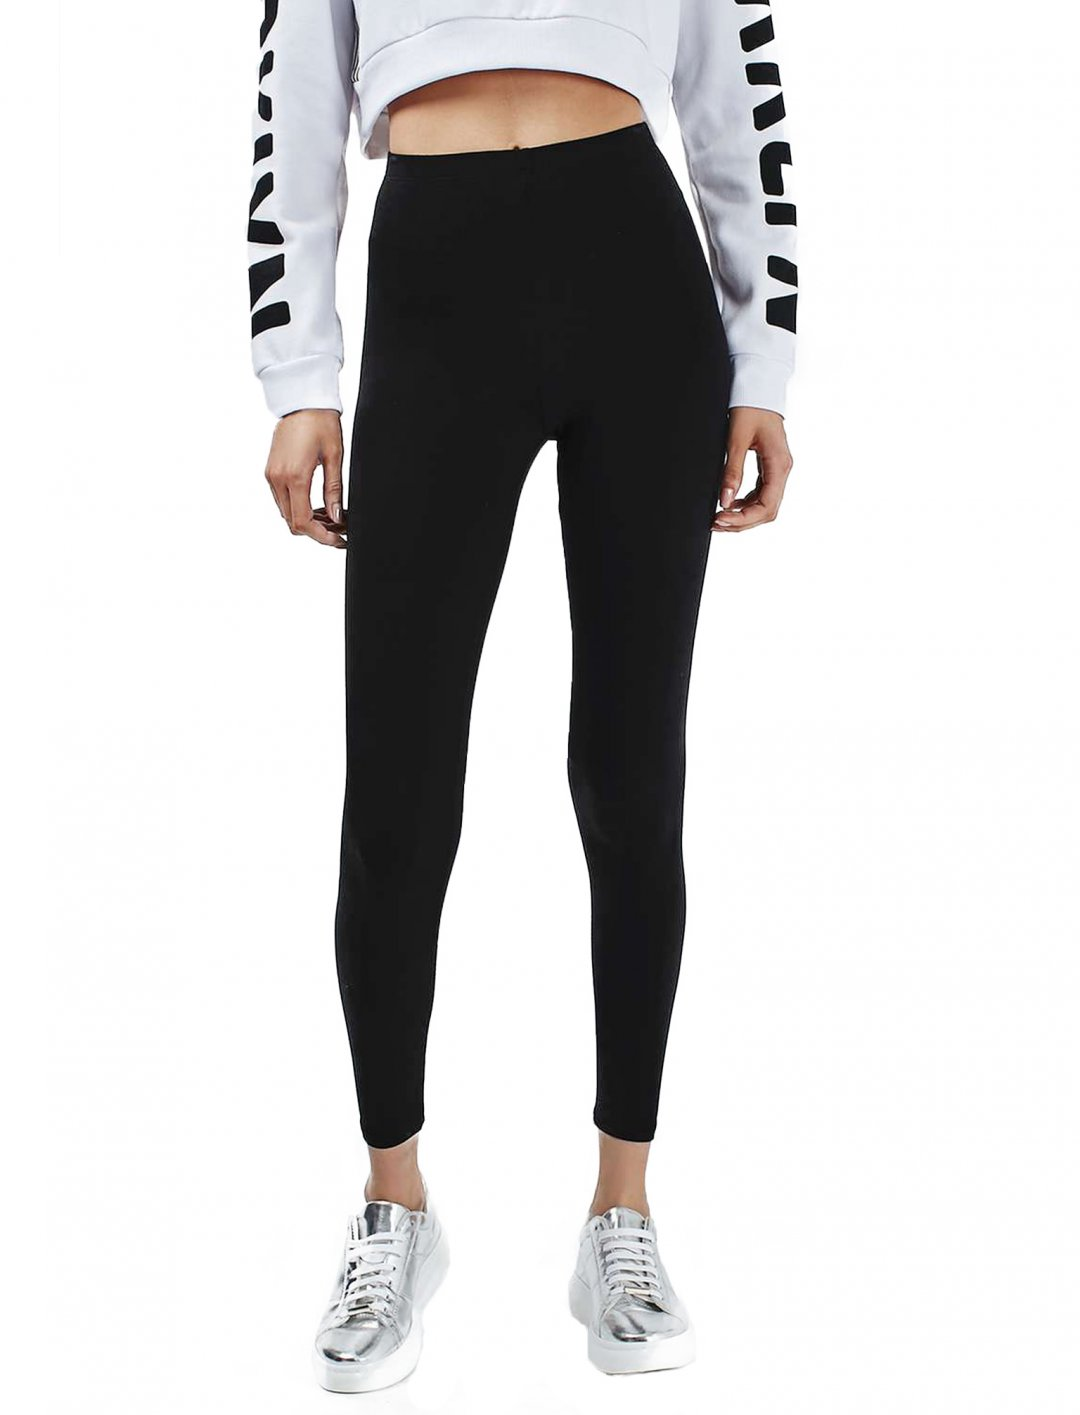 """Topshop Ankle Length Leggings {""""id"""":5,""""product_section_id"""":1,""""name"""":""""Clothing"""",""""order"""":5} Topshop"""